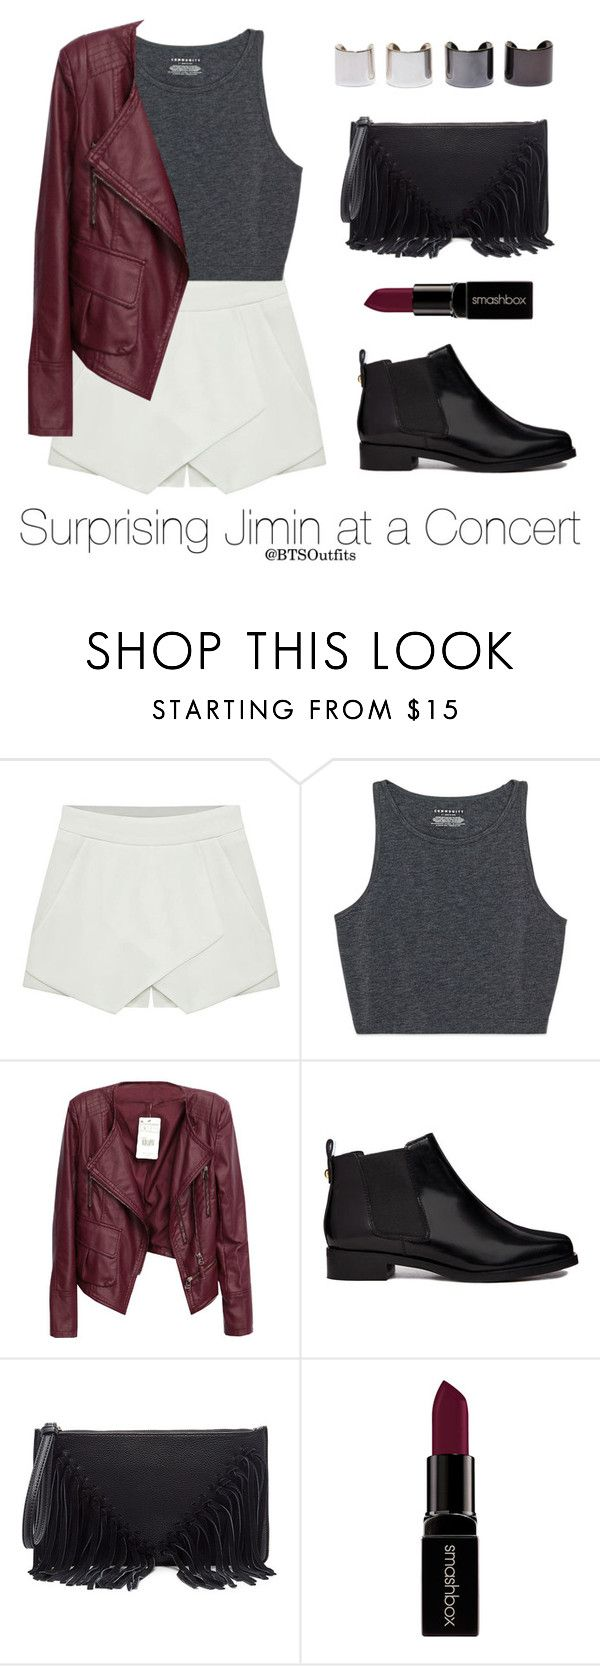 """Surprising Jimin at a Concert"" by btsoutfits ❤ liked on Polyvore featuring Eloqueen, ASOS, Sole Society, Smashbox and Luv Aj"